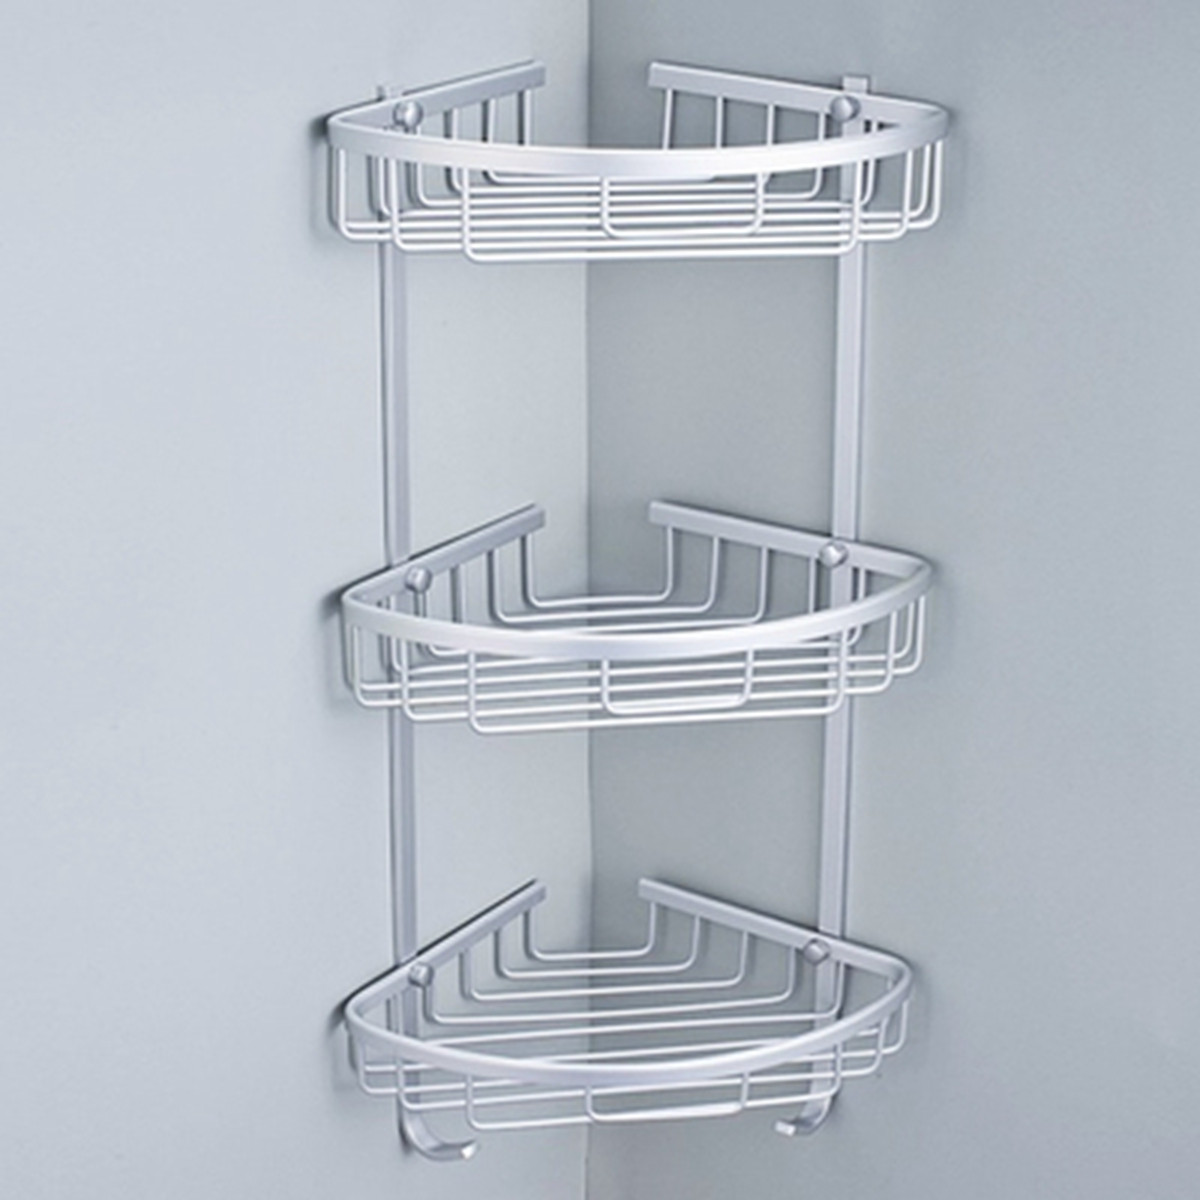 3 Layer Bathroom Punch Free  Aluminum Triangular Rack Storage Organizer Corner Shelf For Shampoo Soap Cosmetic Basket Holder